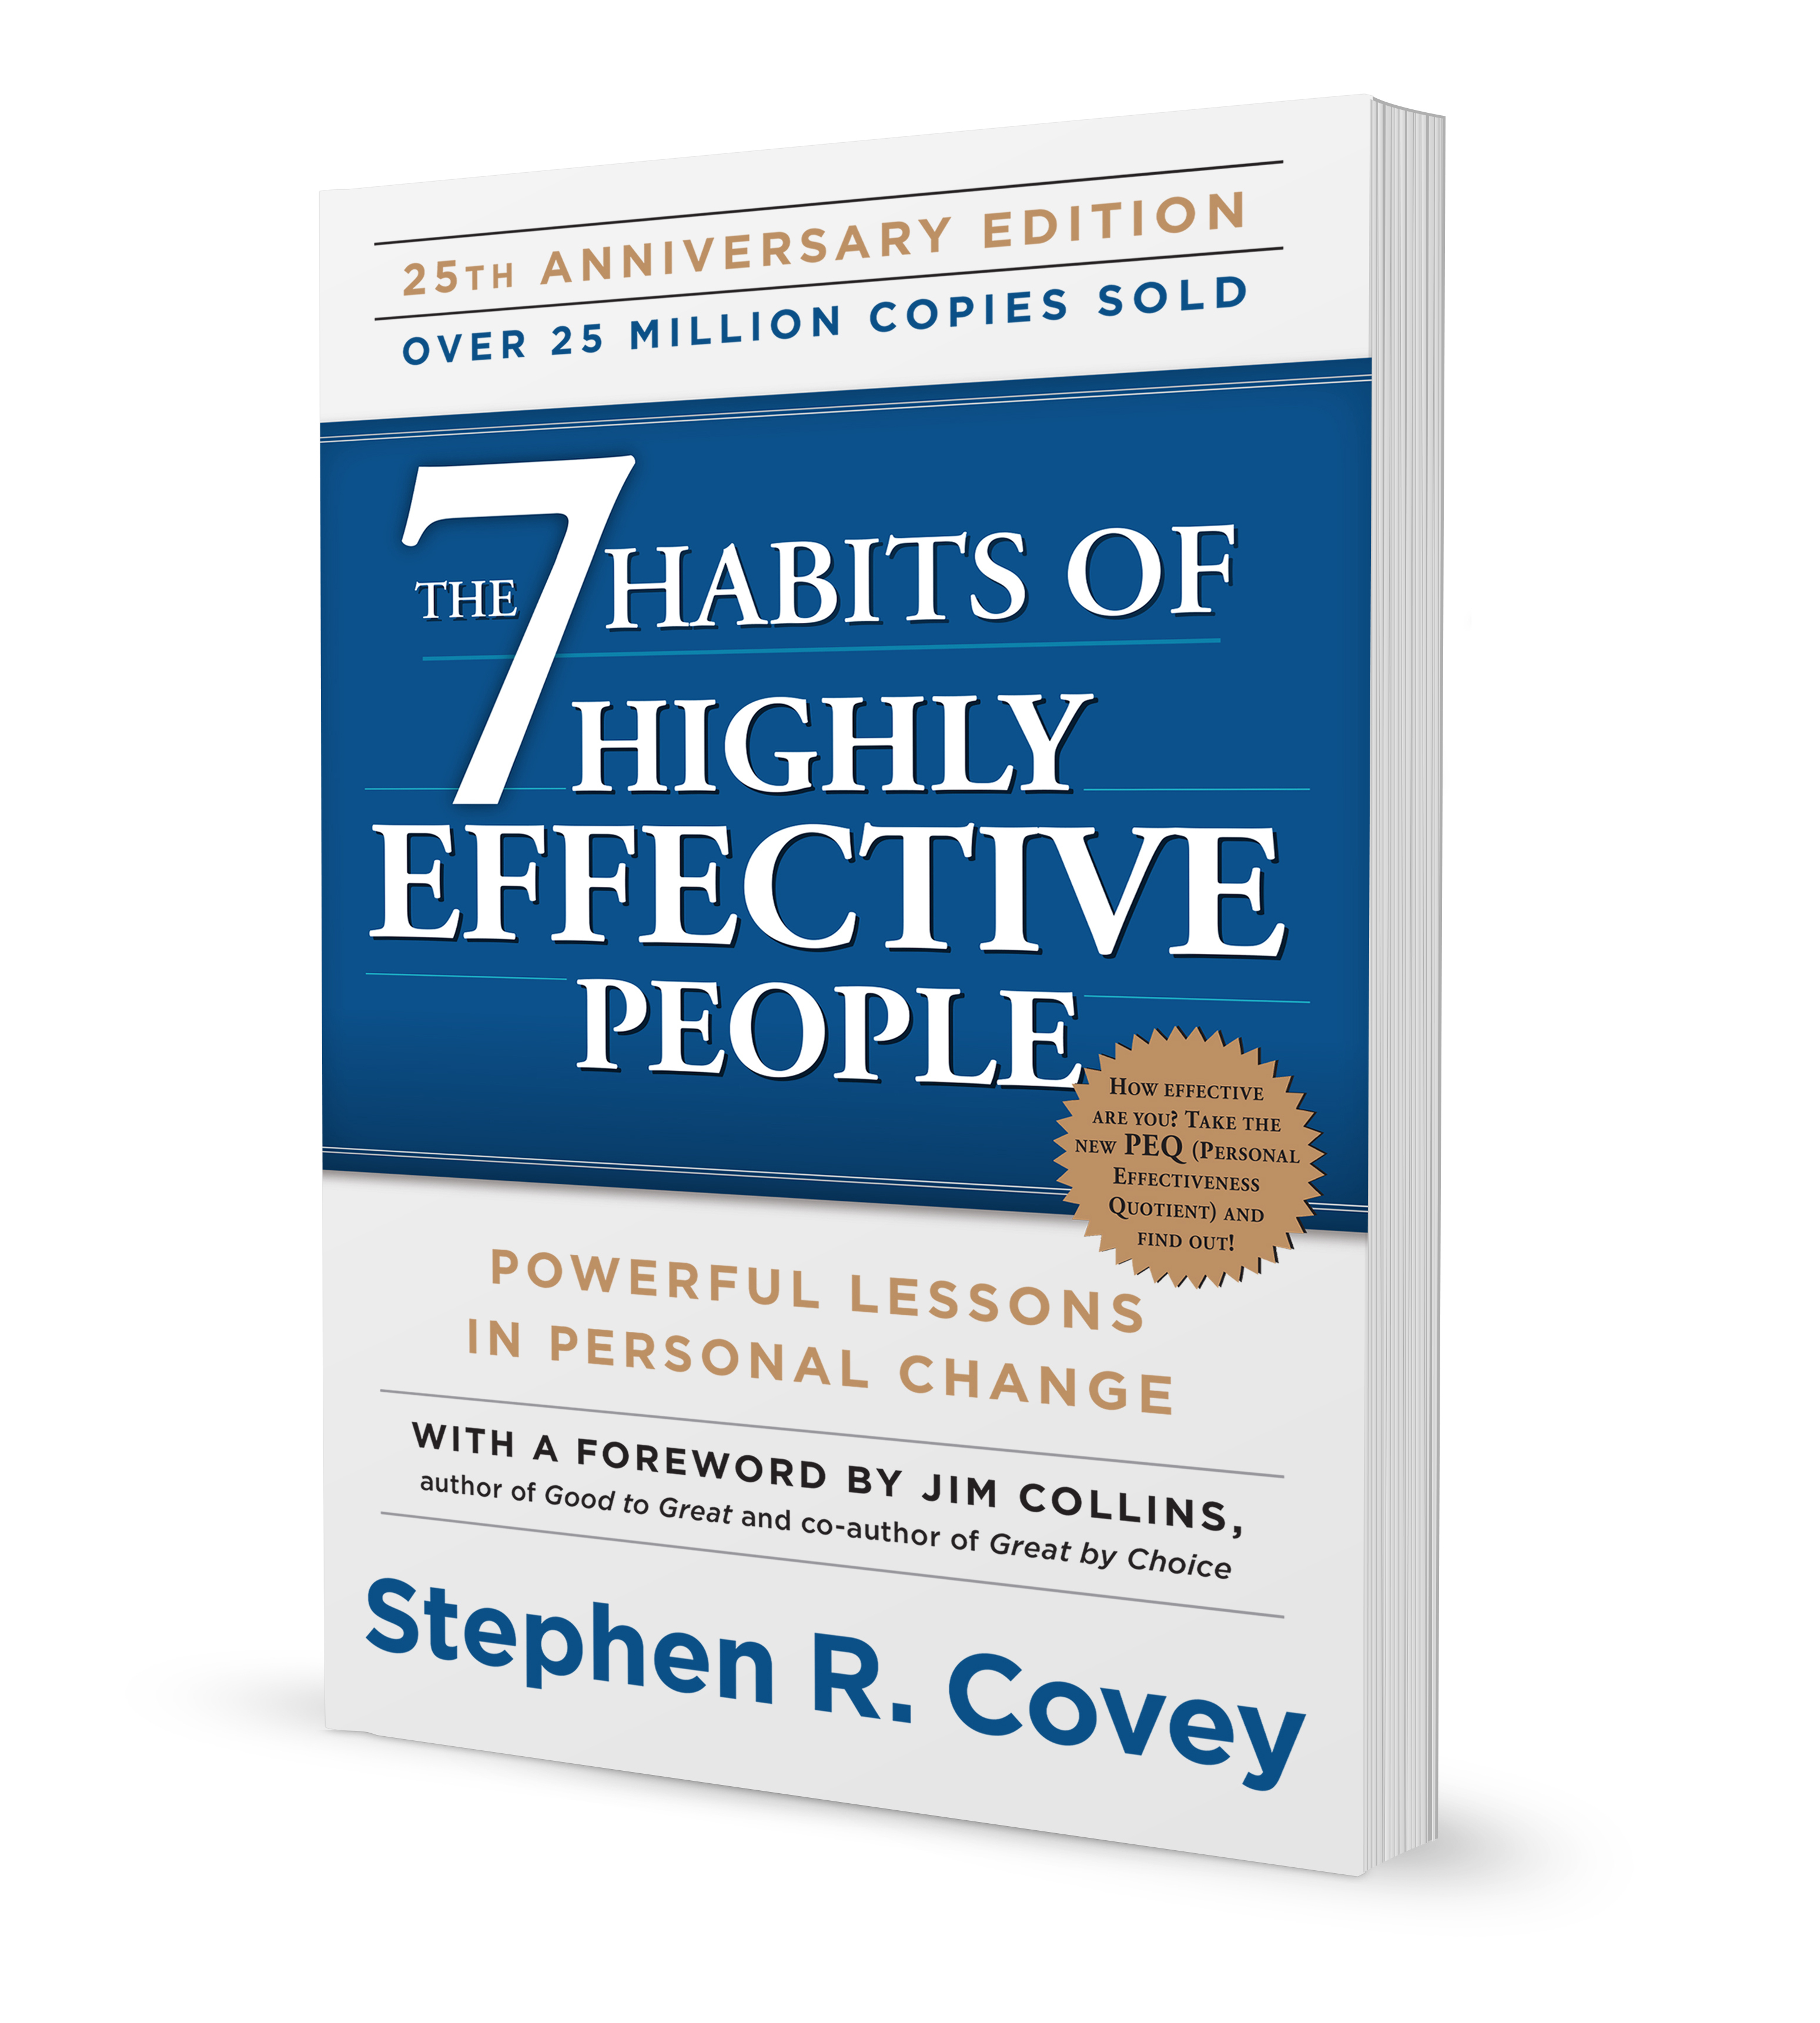 The 7 habits of highly effective people rich dad poor dad book who.